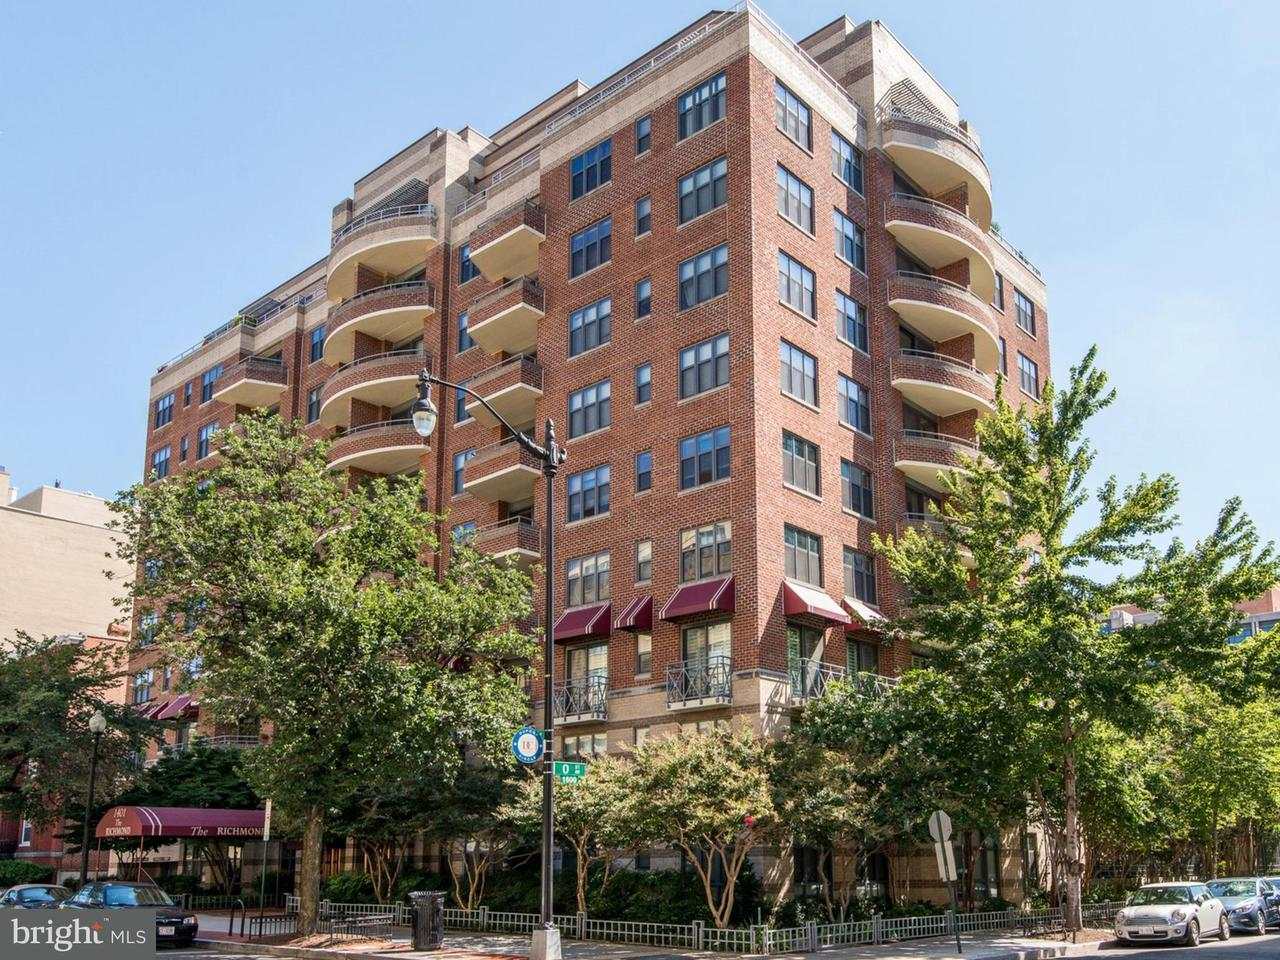 Condominium for Sale at 1401 17th St Nw #510 1401 17th St Nw #510 Washington, District Of Columbia 20036 United States